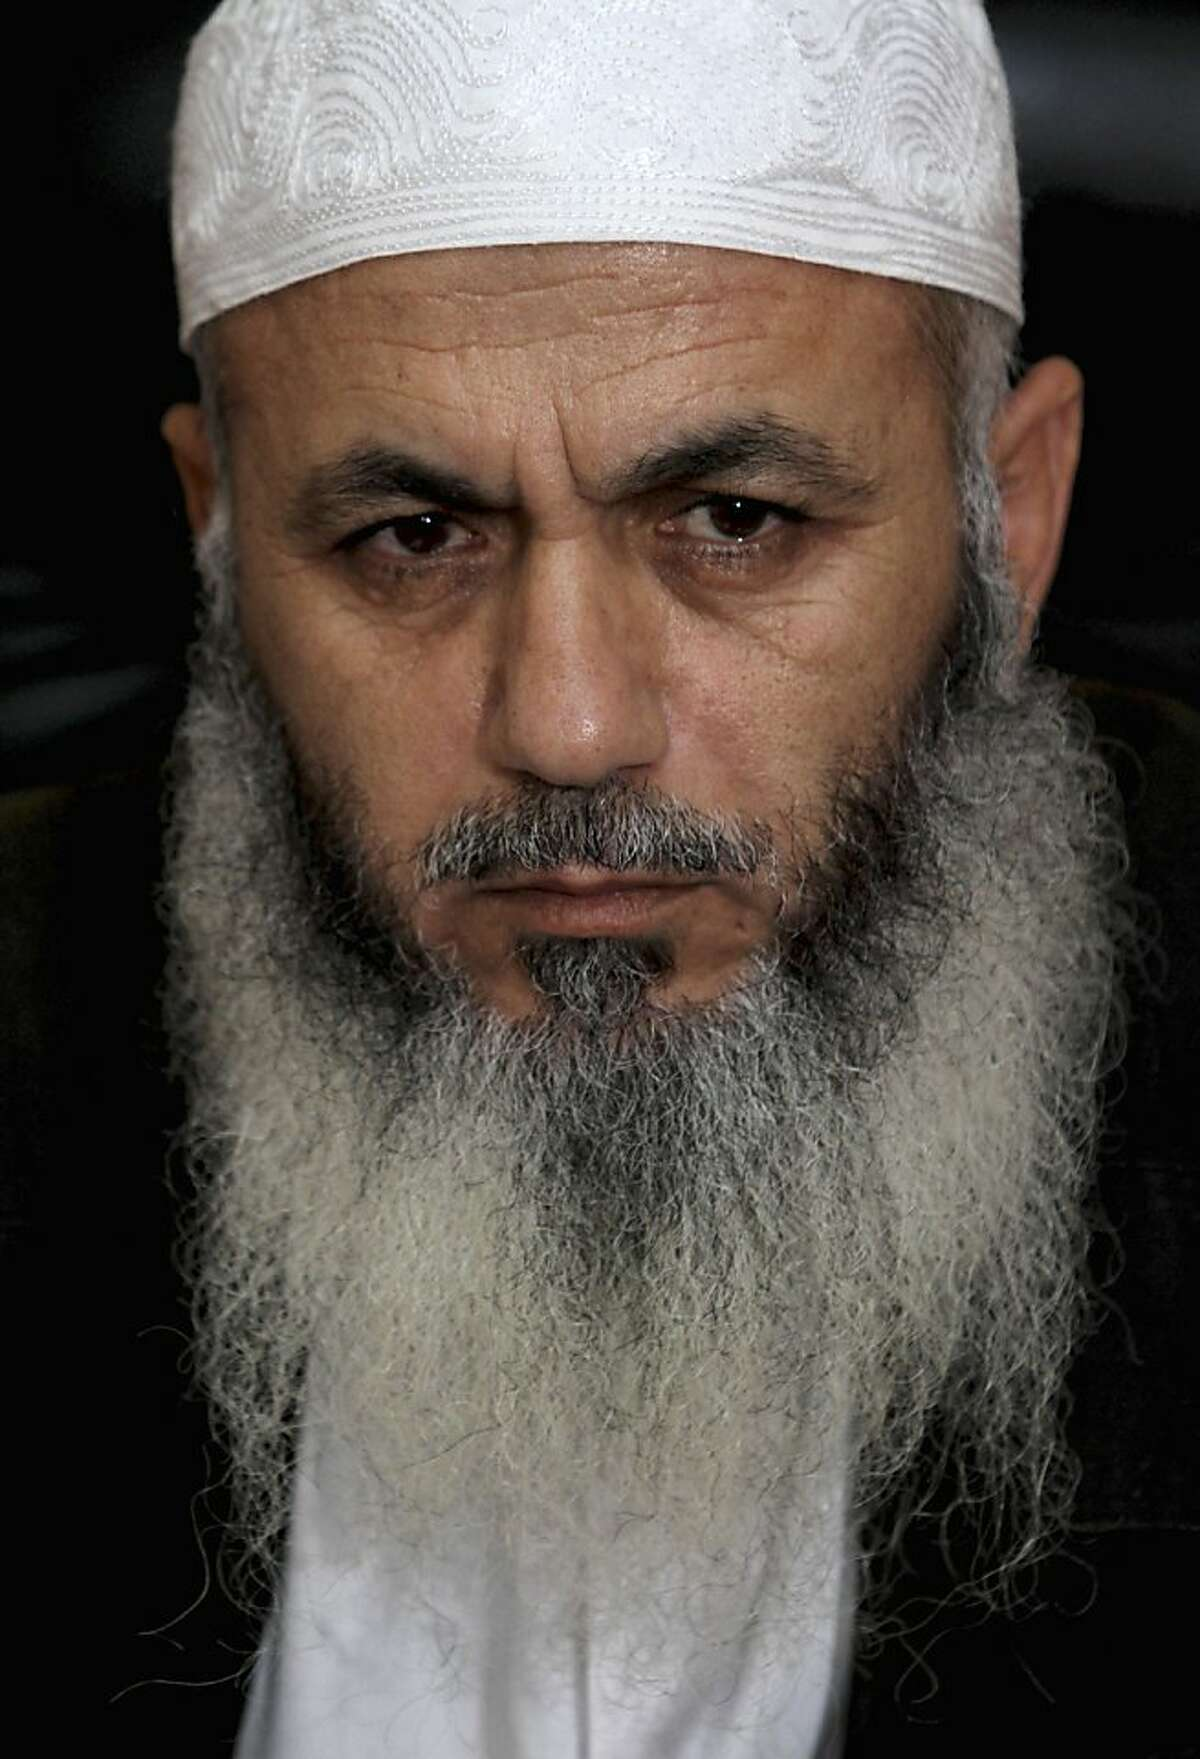 In this Oct. 22, 2011 file photograph, Zuhair al-Qaissi, a secretary-general of the armed wing of the Popular Resistance Committees (PRC) sits during an interview to the Associated Press in his office in Gaza City. An Israeli airstrike killed a top Palestinian militant commander in Gaza on Friday March 9, 2012 in the highest profile attack against the coastal strip in months. The Israeli military confirmed the strike, saying the slain commander Zuhair al-Qaissi was plotting an infiltration attack into Israel similar to one his group carried out in August that killed eight people. (AP Photo/Hatem Moussa, File)